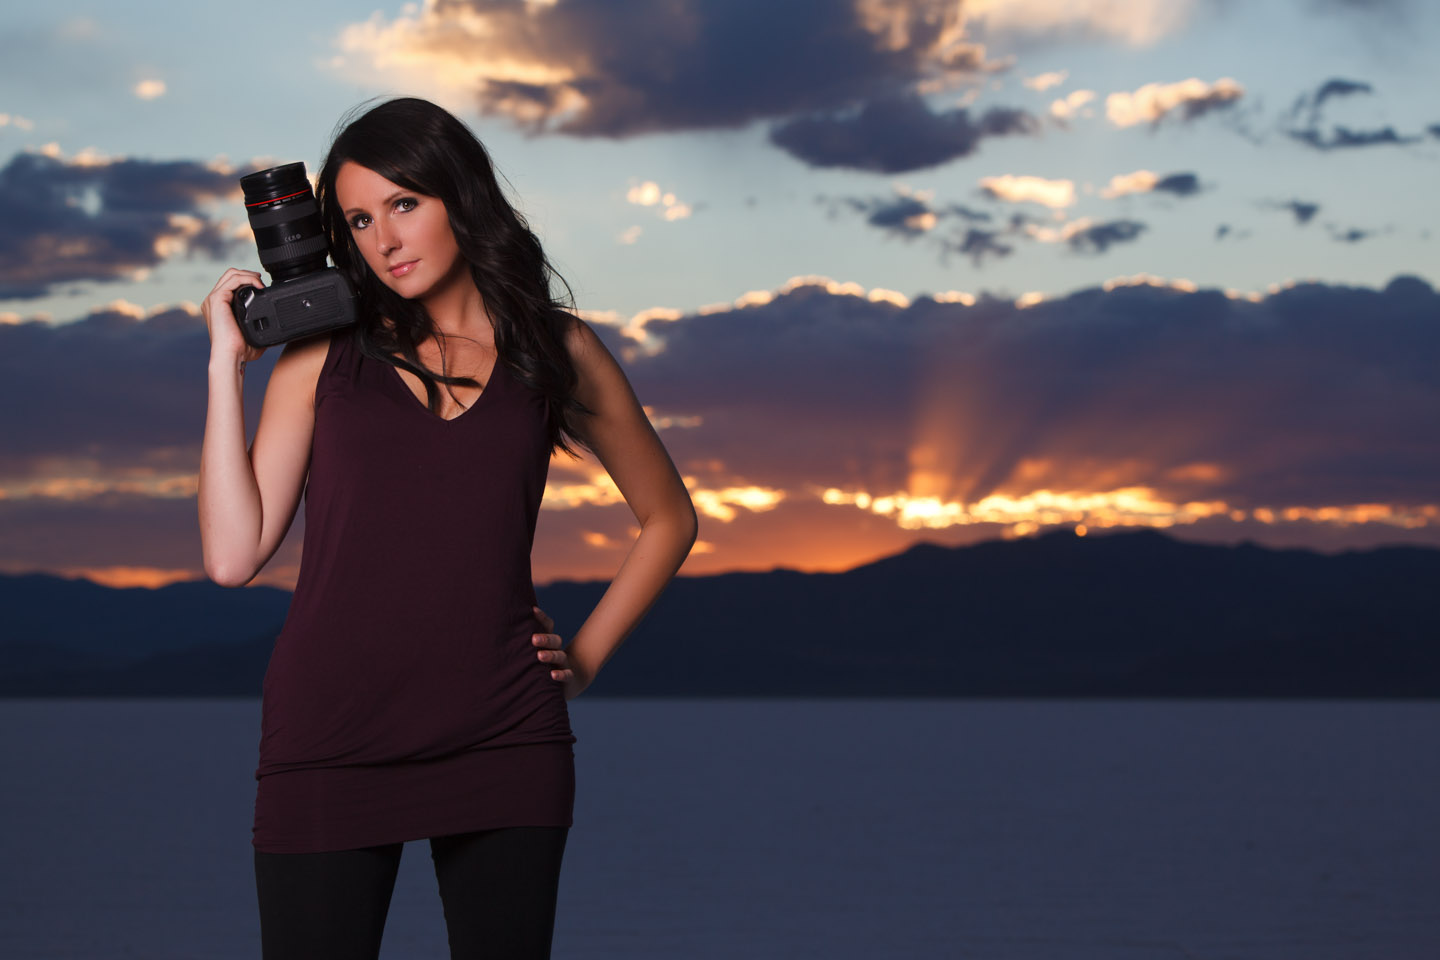 Sunset on the Bonneville Salt Flats is perfect for portraits